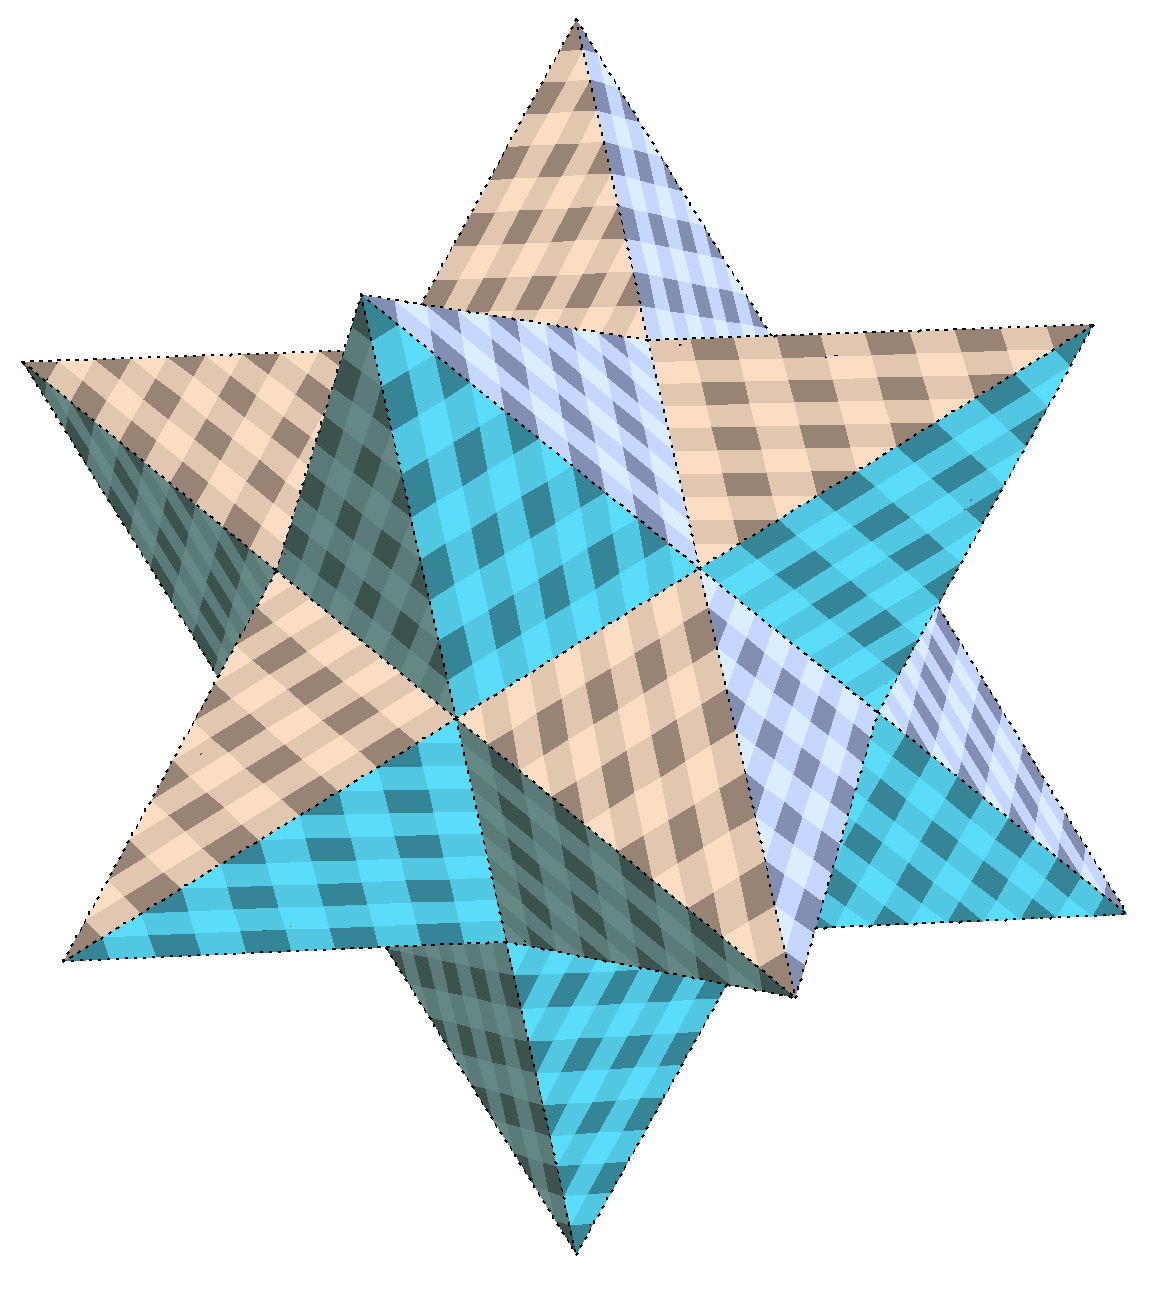 Patterned, Stellated dodecahedron